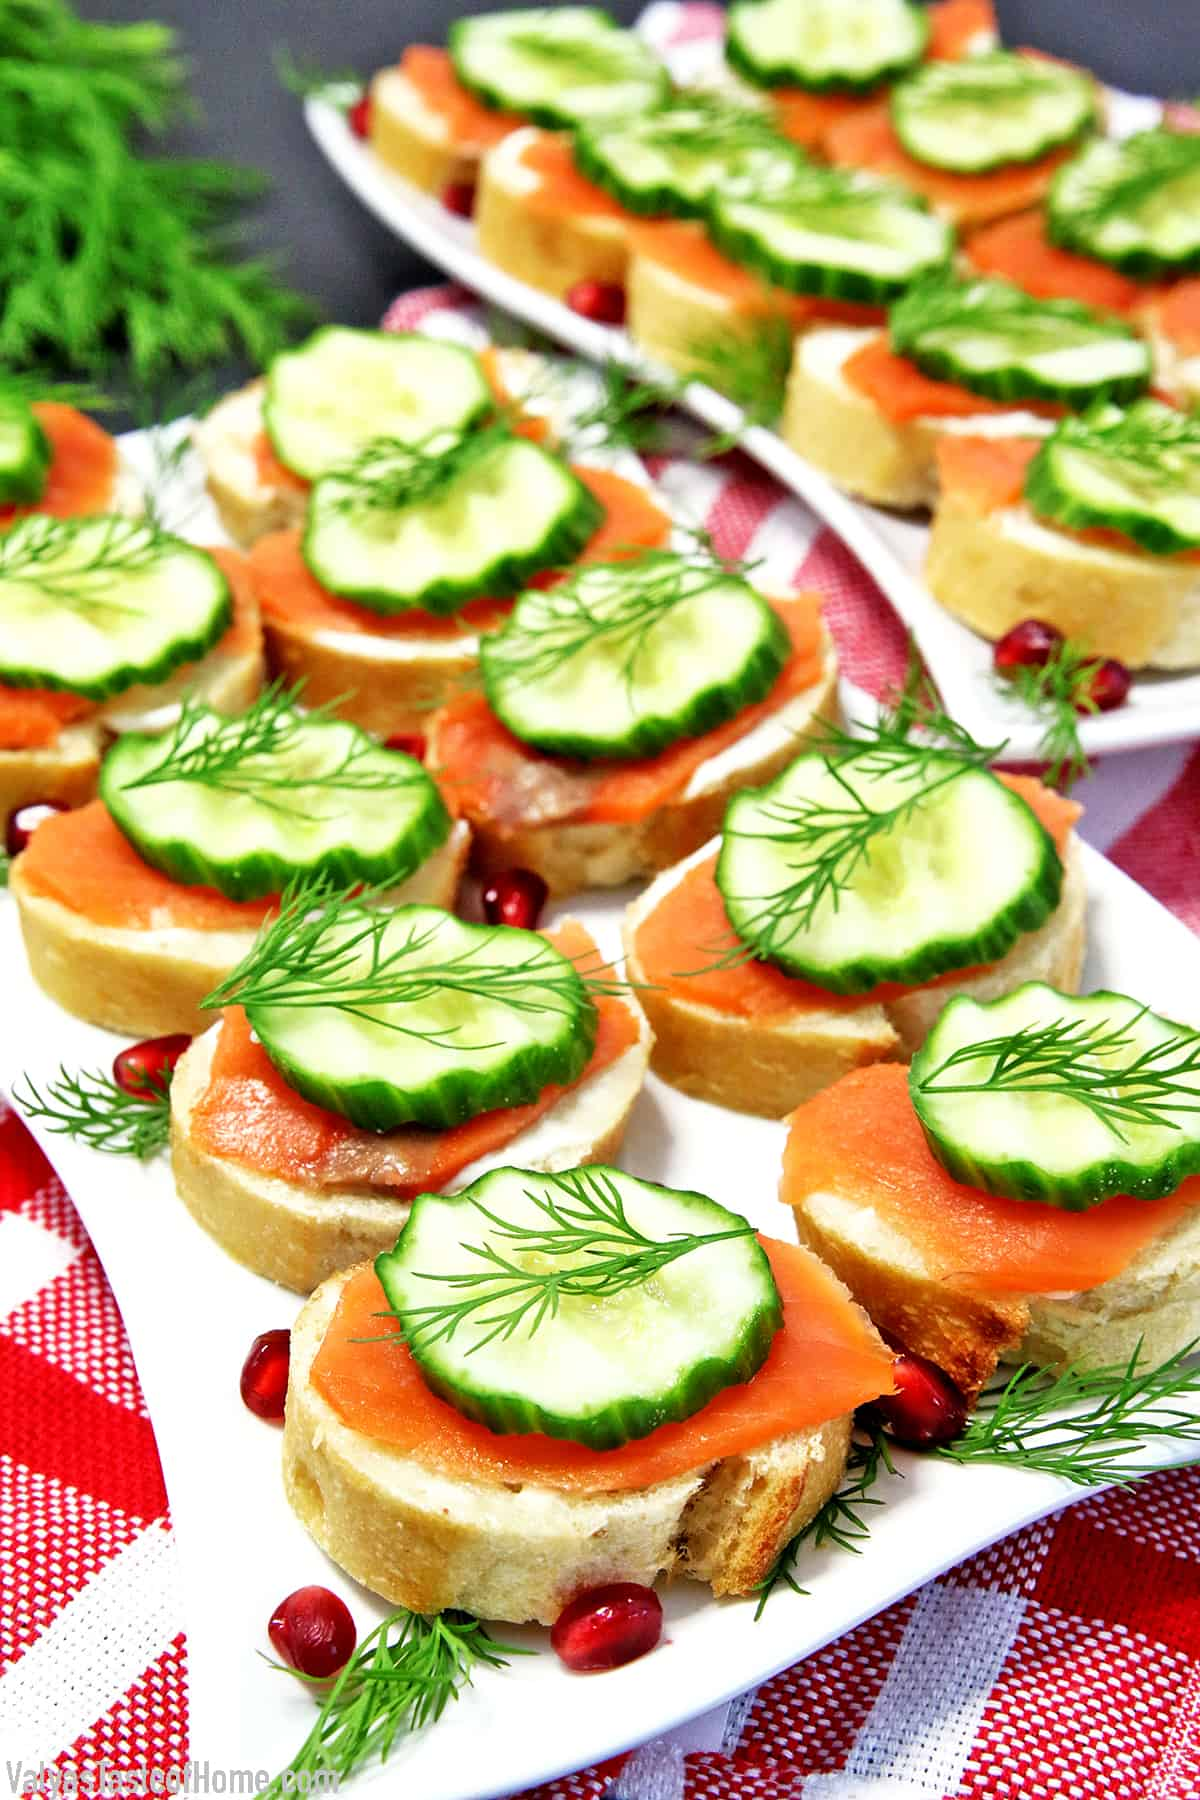 These Smoked Salmon Canapés not only taste incredible but they decorate your party table well. The only problem seems to be with these little treats is no matter how many you make, they fly off the table too quickly.